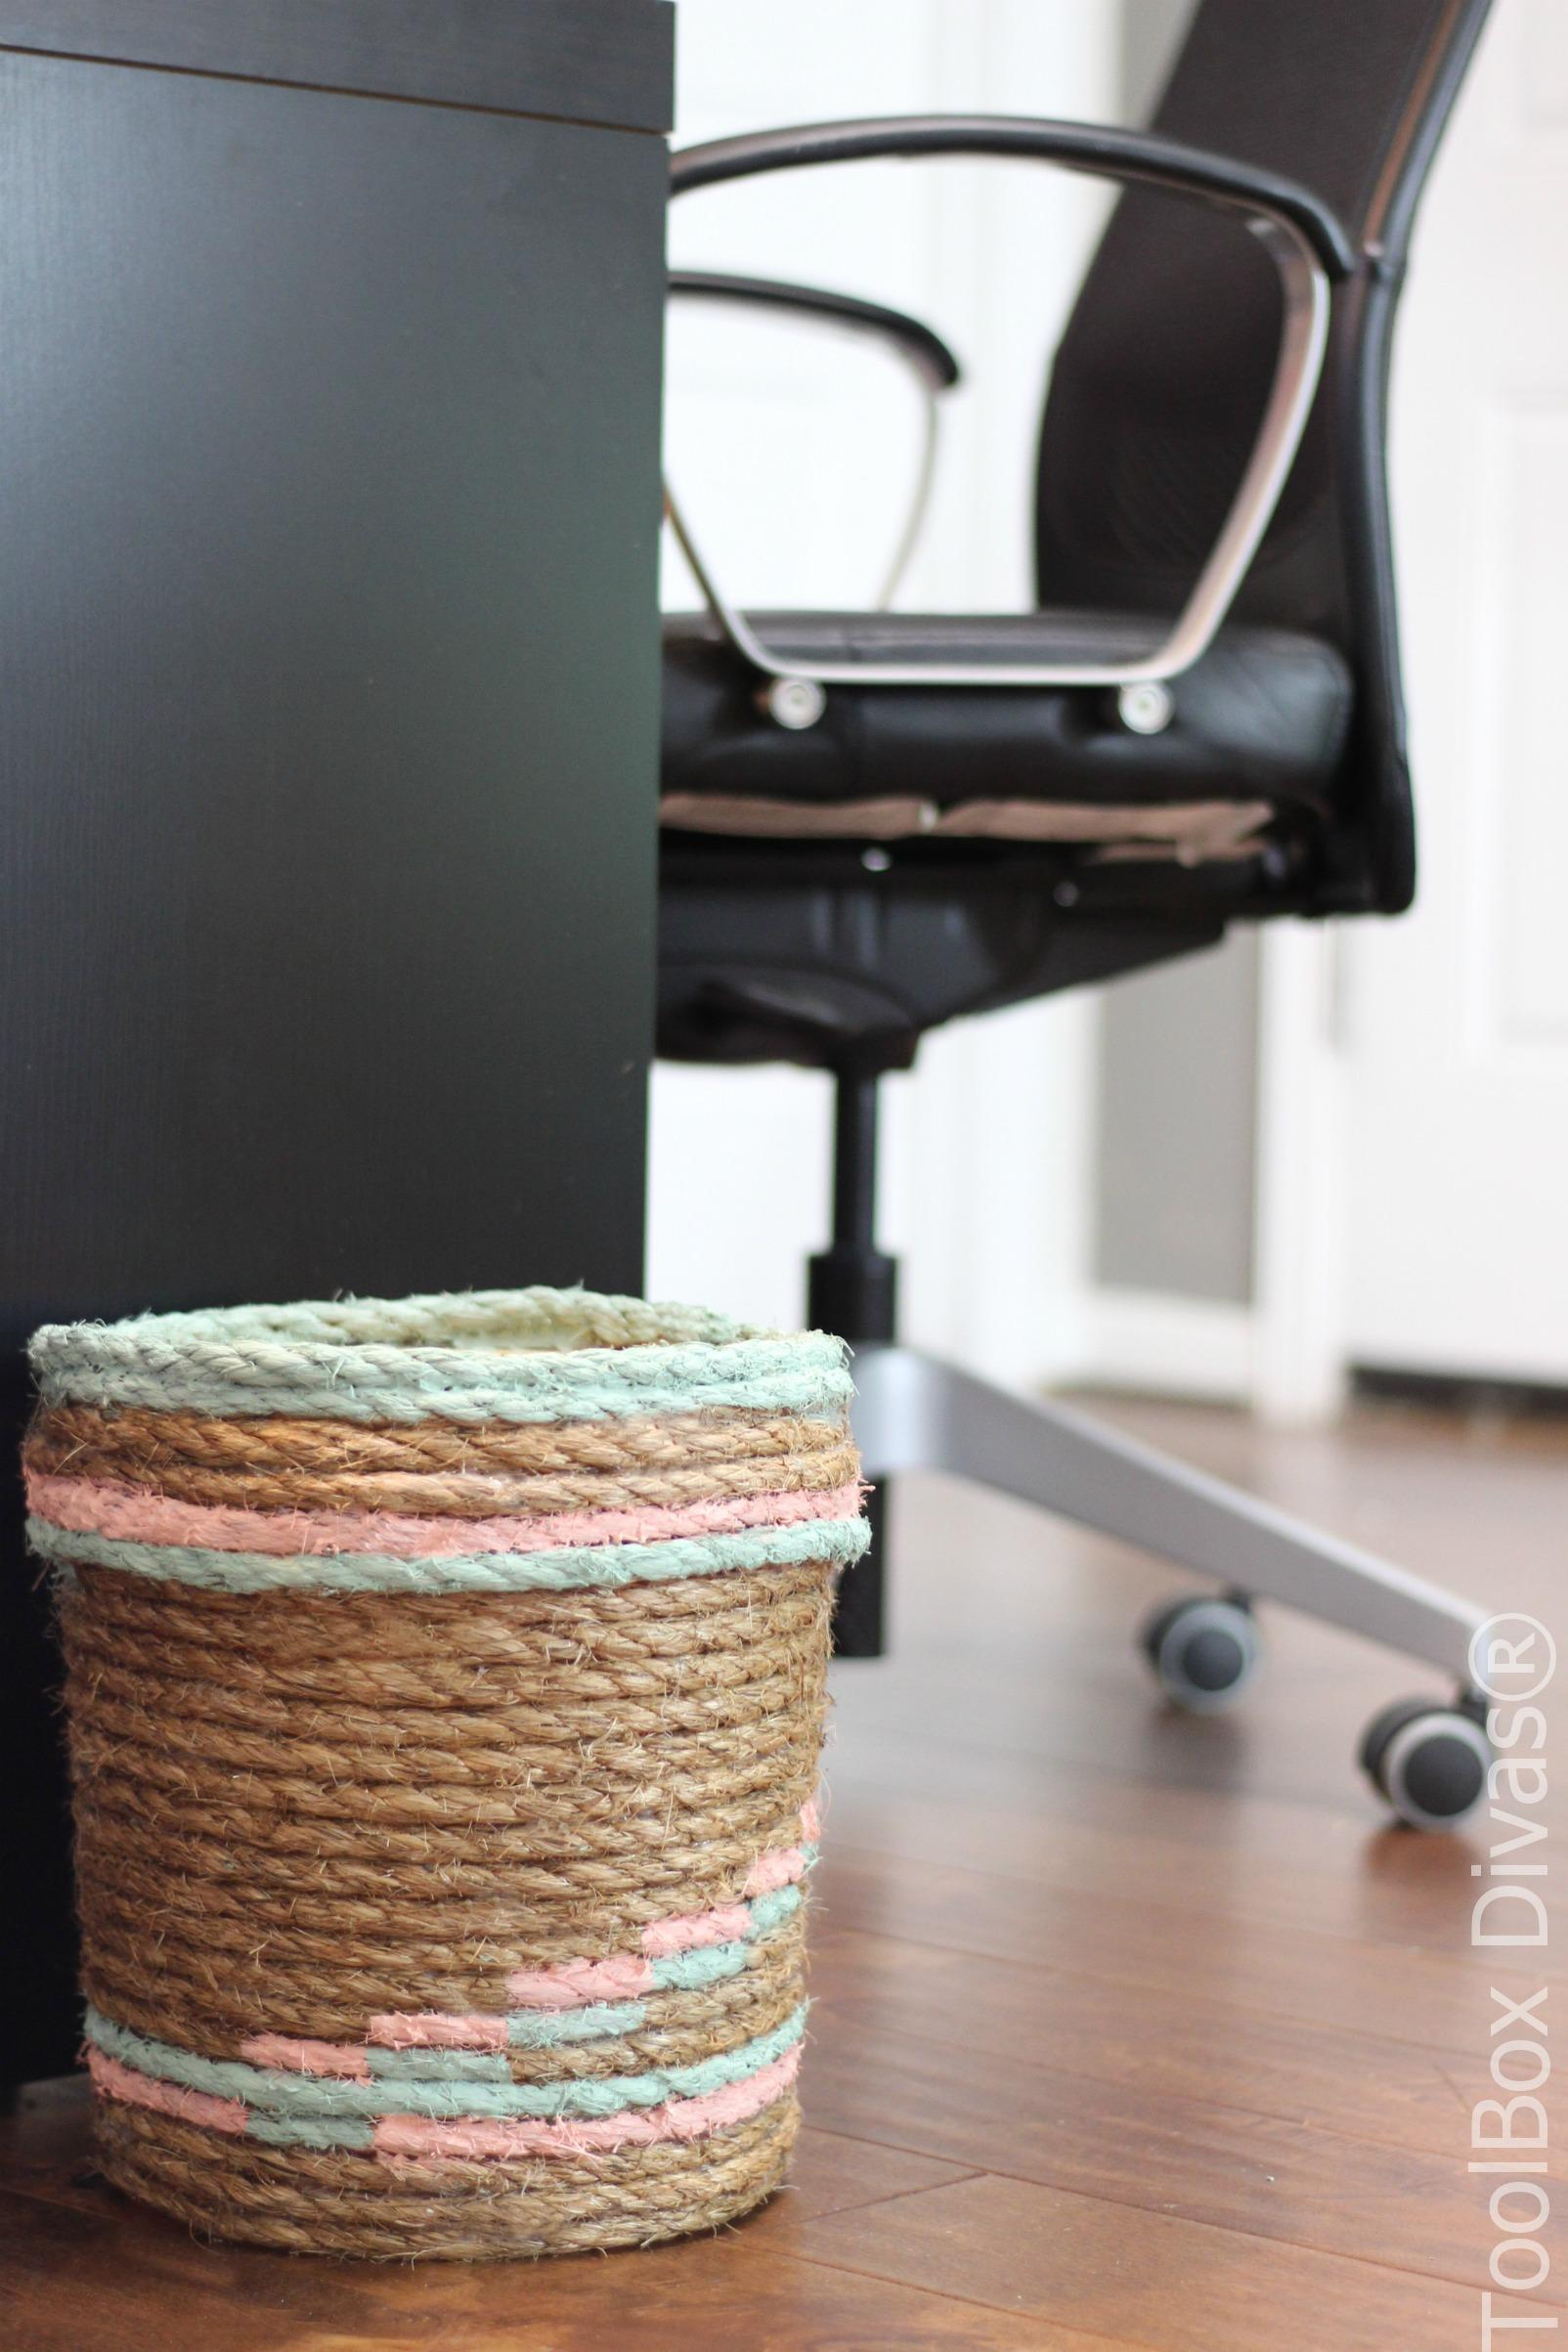 How to make a rope trash basket using an old bucket #Upcycle #Repurpose #DIY @ToolboxDivas